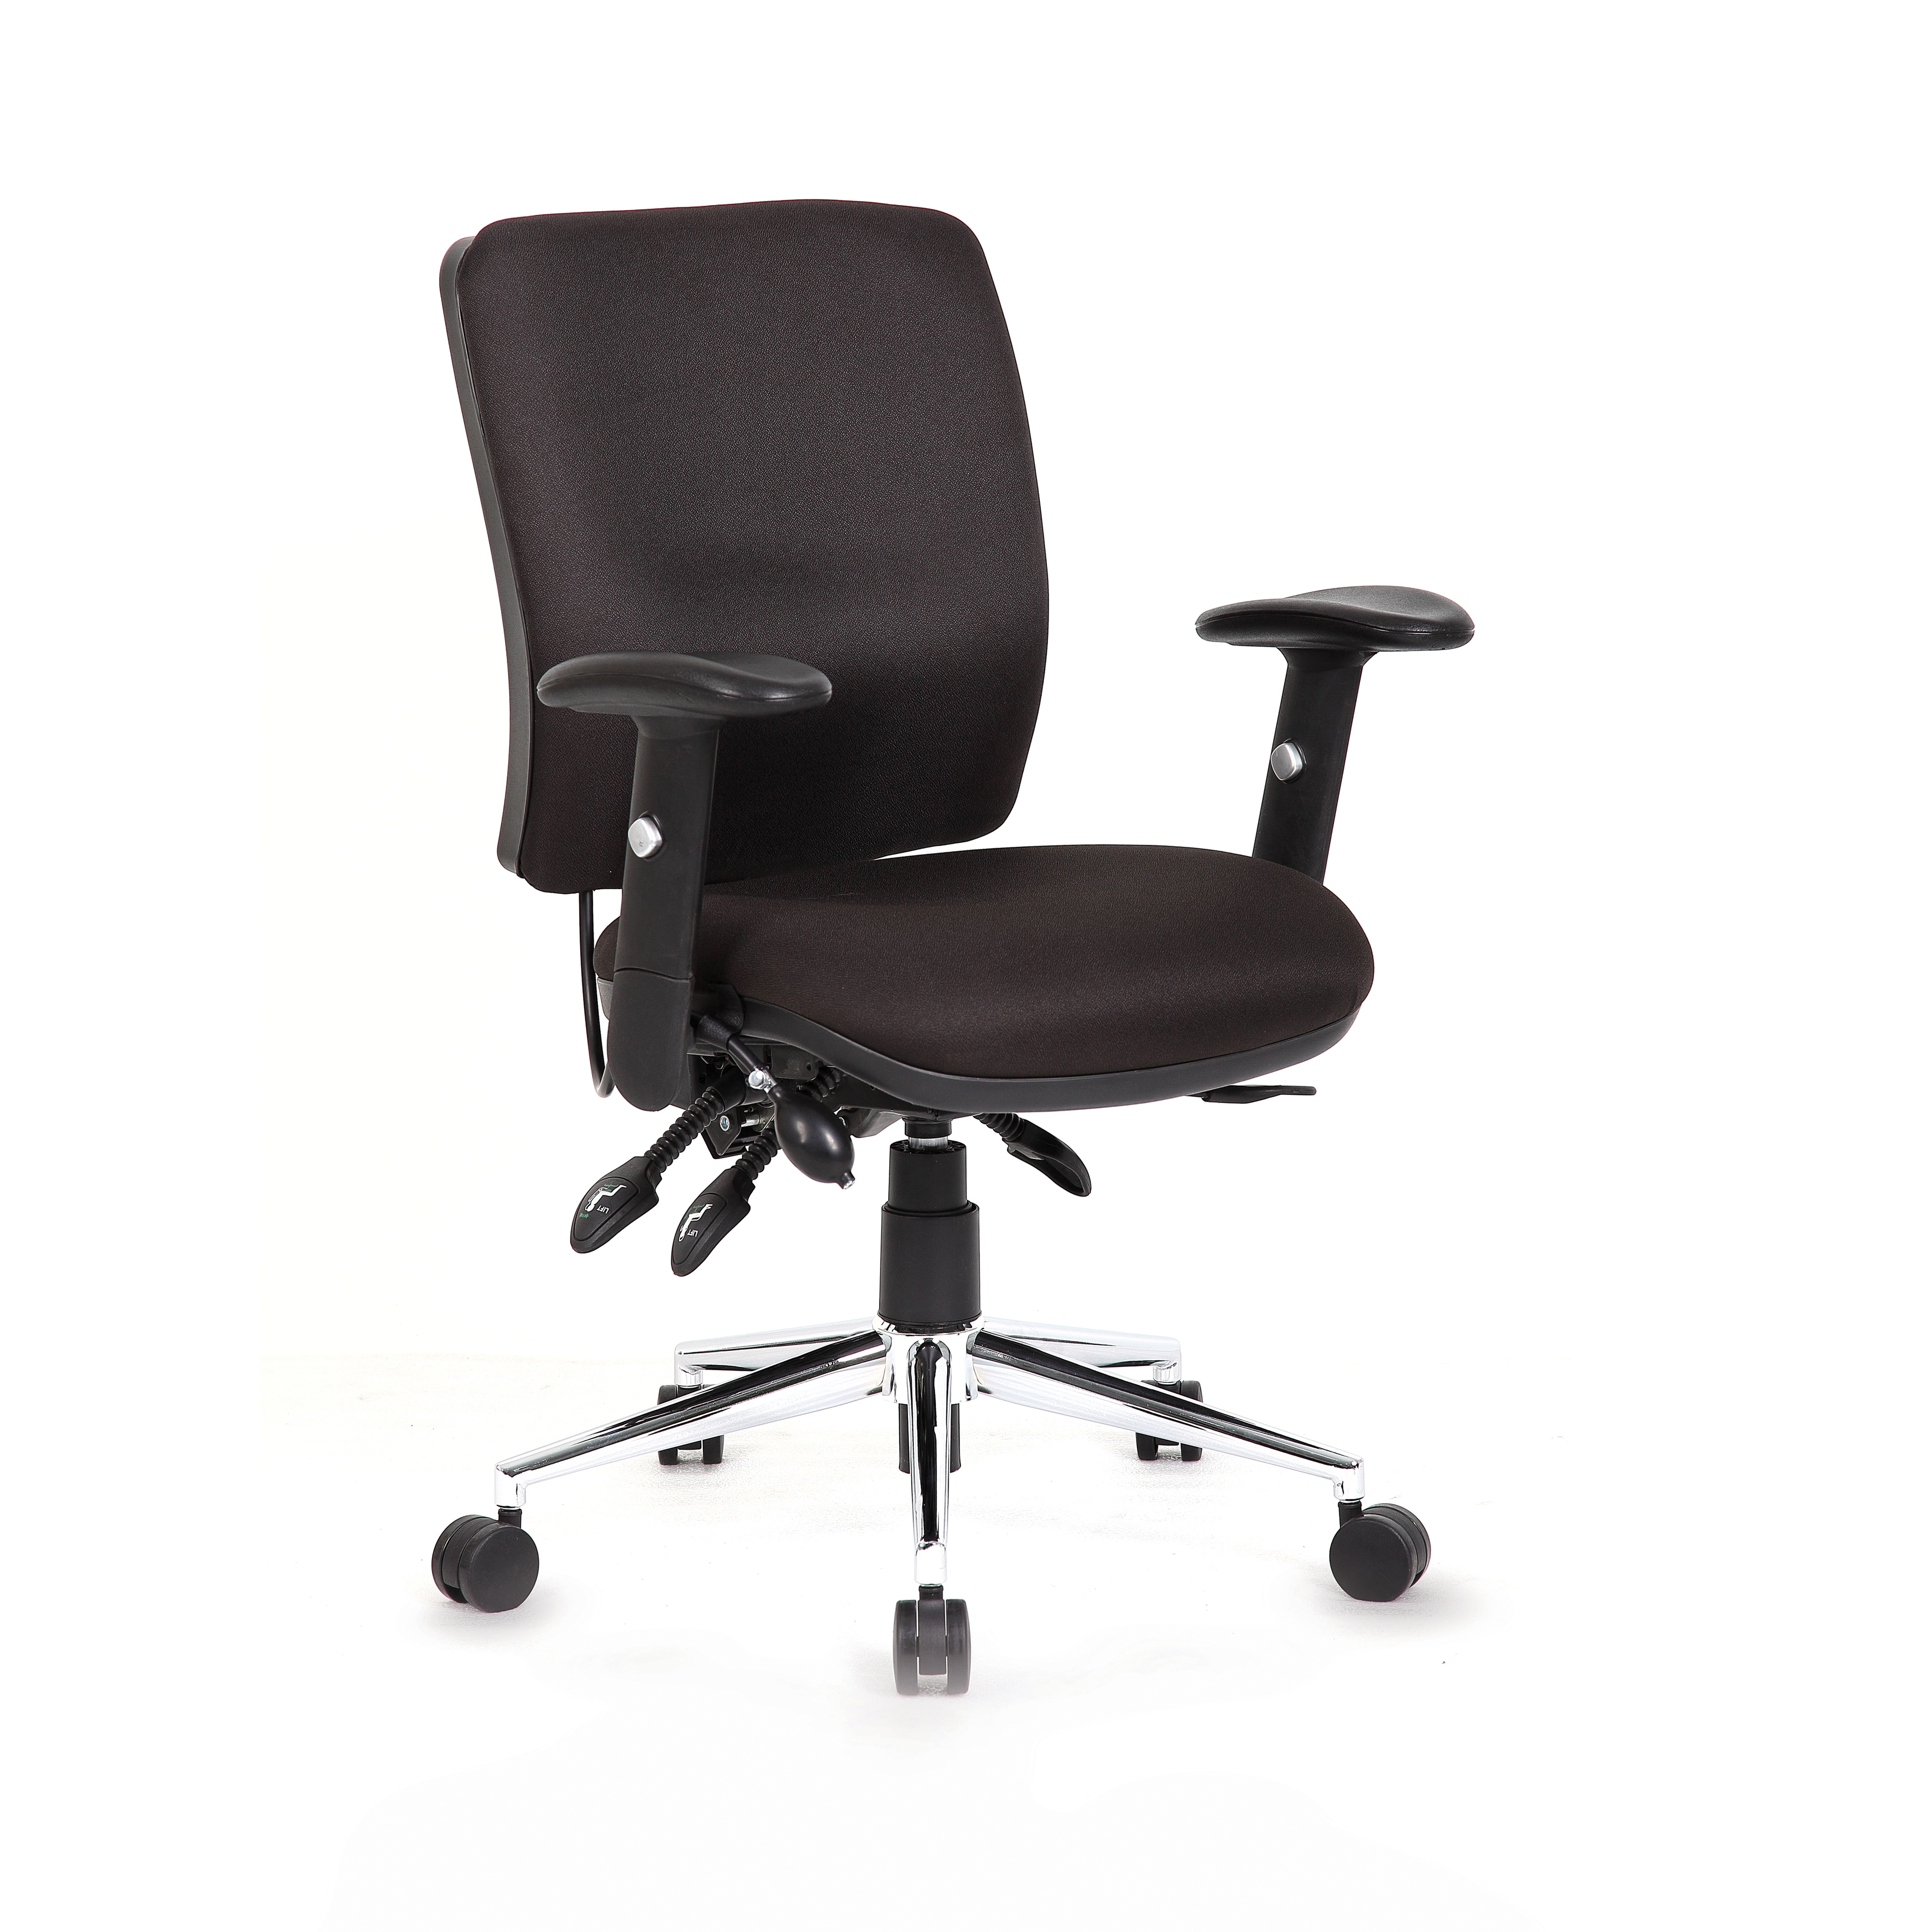 Task seating Sonix Support Chiro Chair Black 480x460-510x480-580mm Ref OP000010